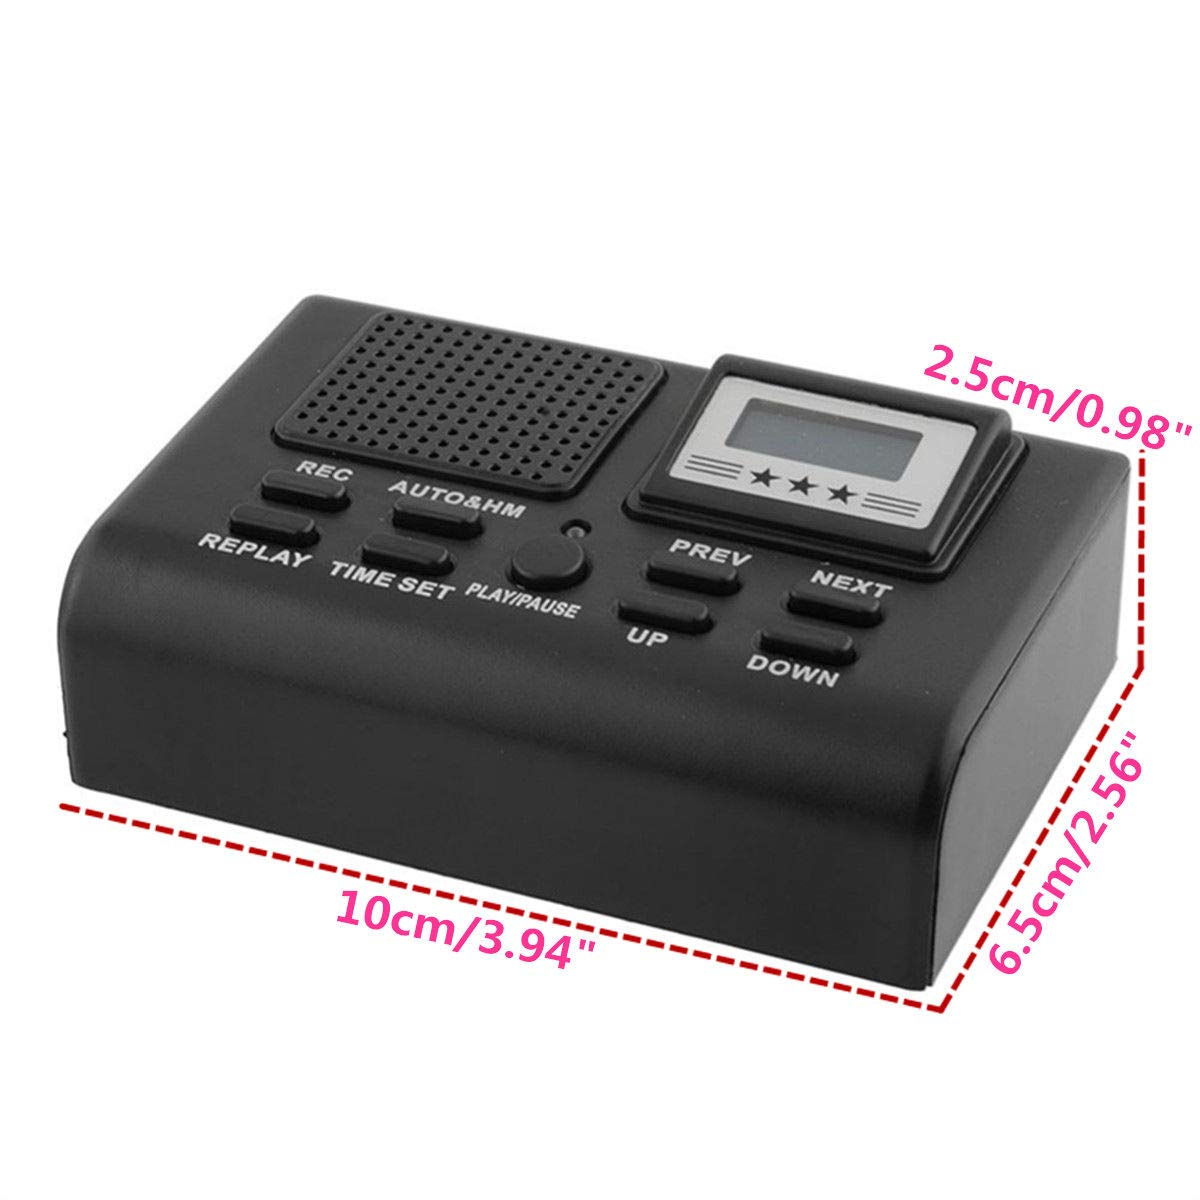 Professional Digital Telephone Voice Recorder Mini Phone Call Recording Device LCD Display Support TF Card MP3 Play